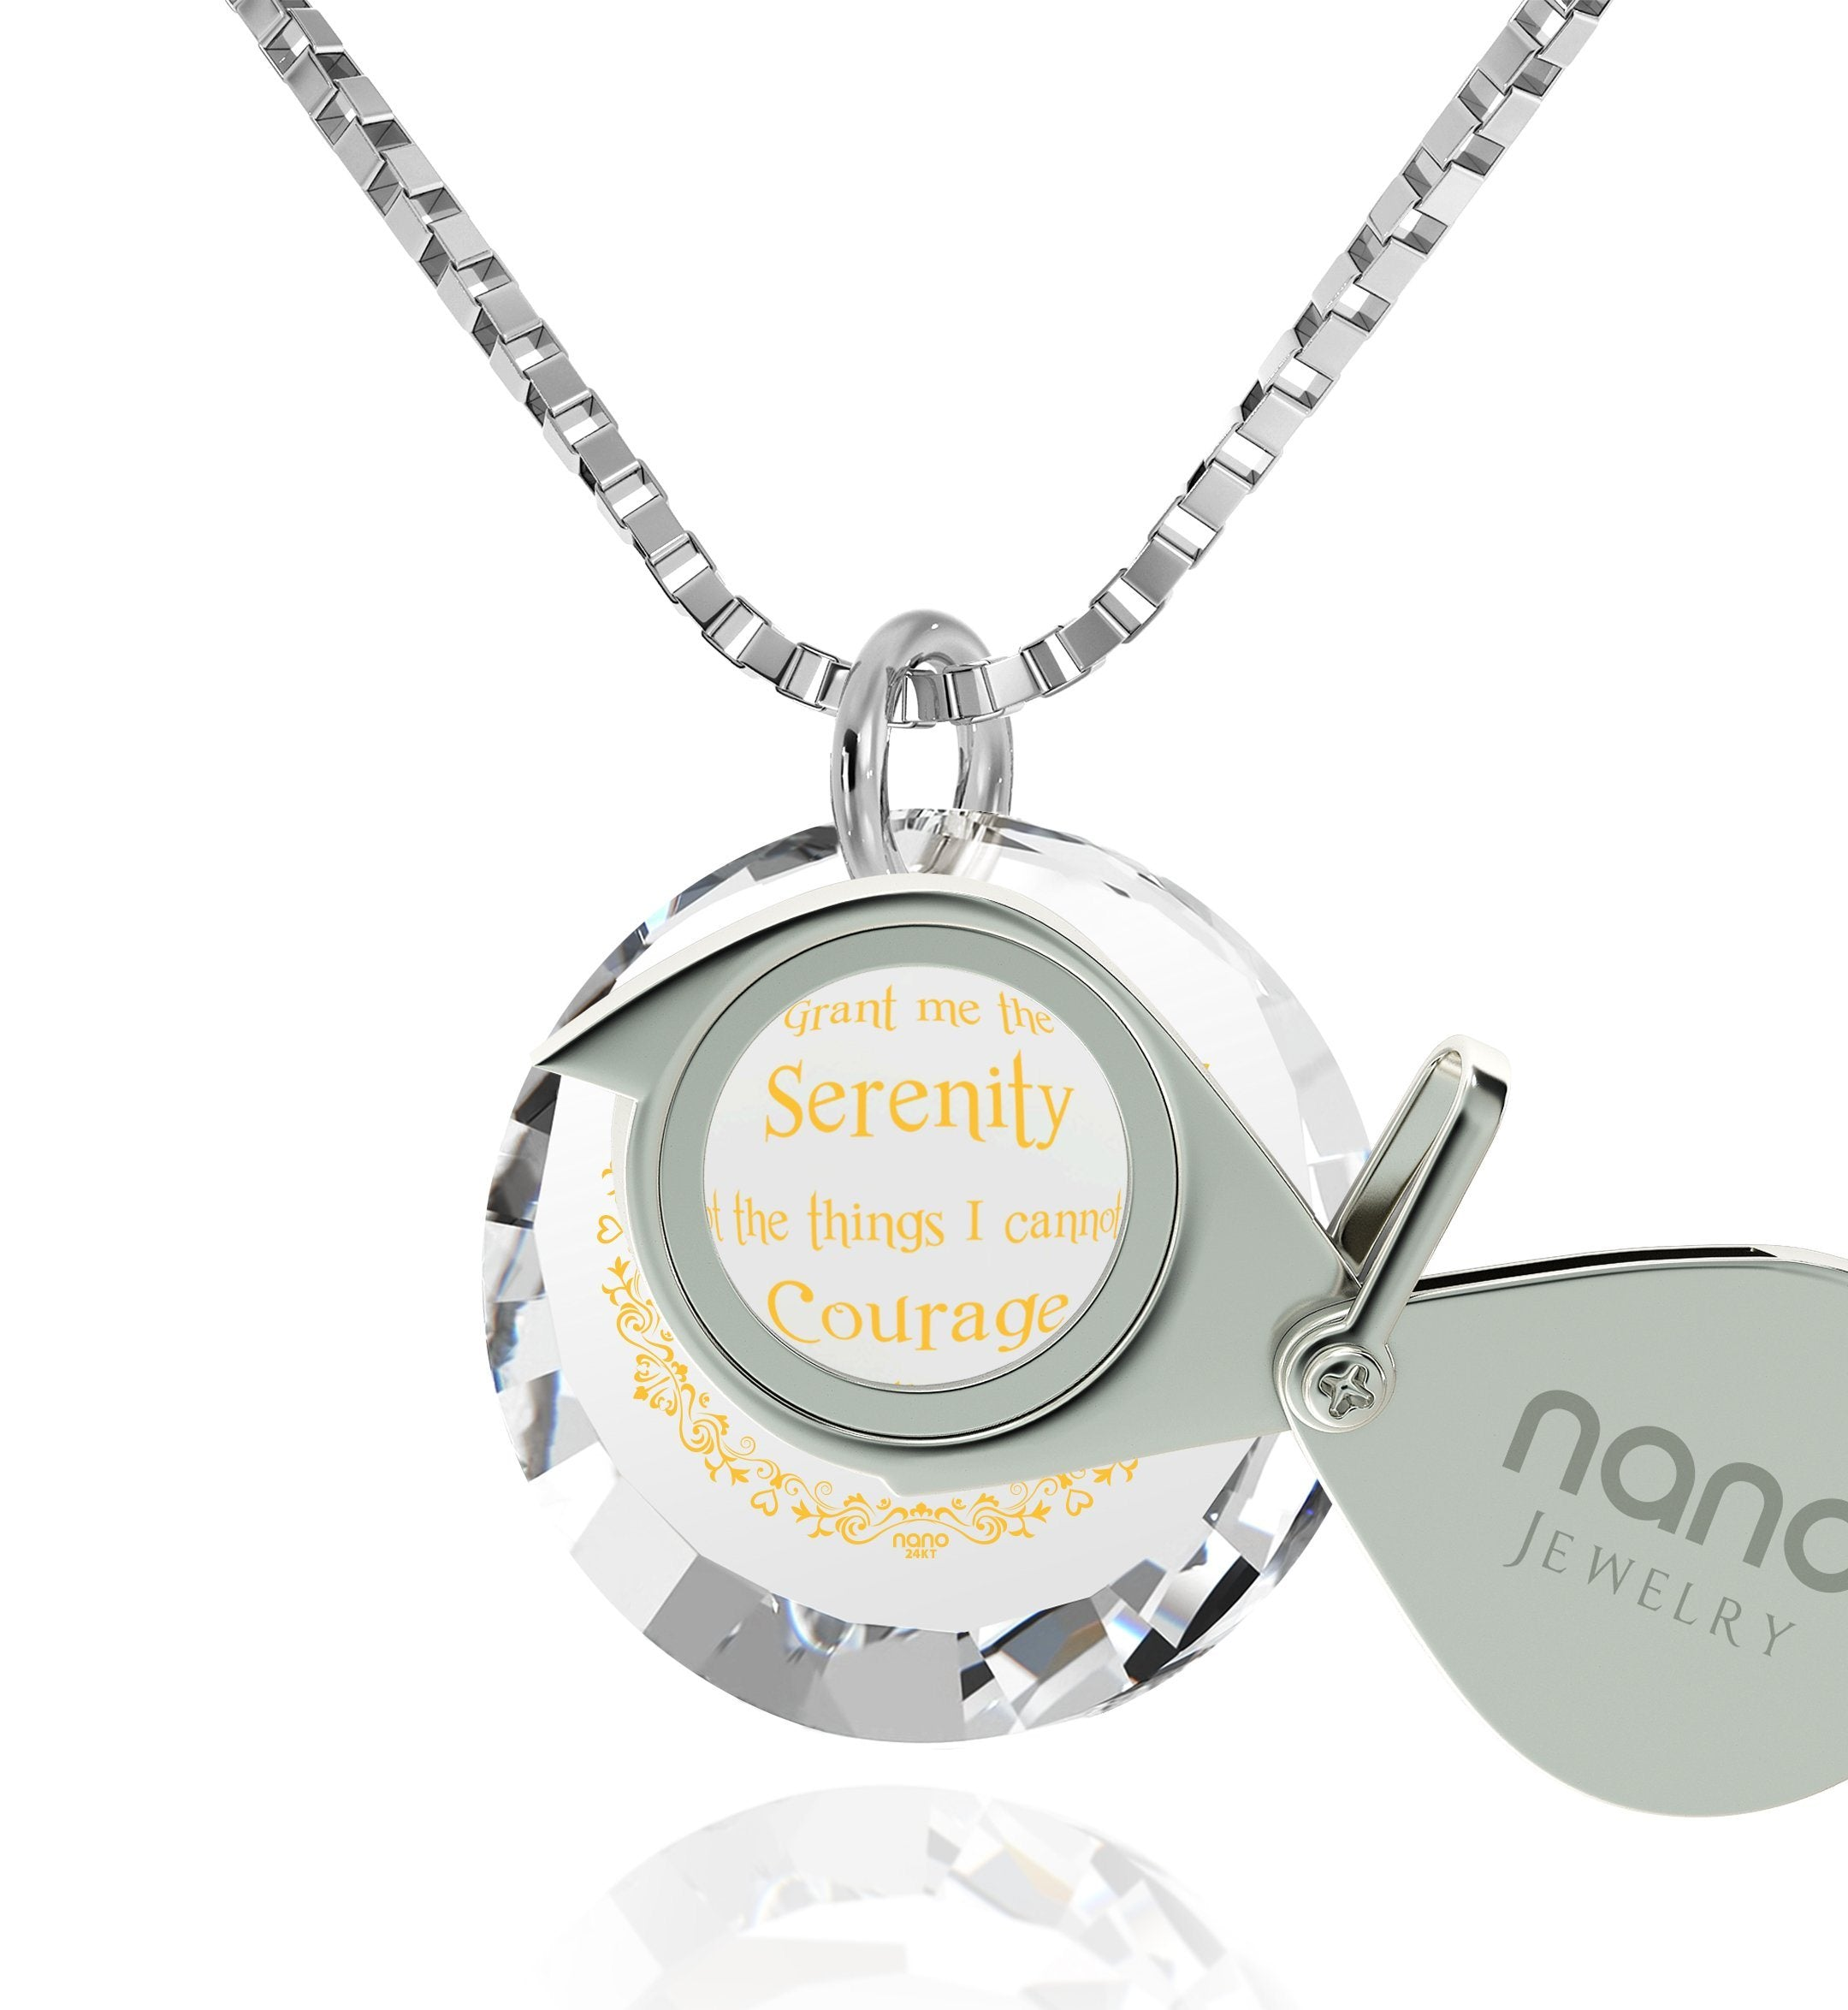 pendant ip oval walmart necklace steel stainless prayer hallmark from com connections serenity